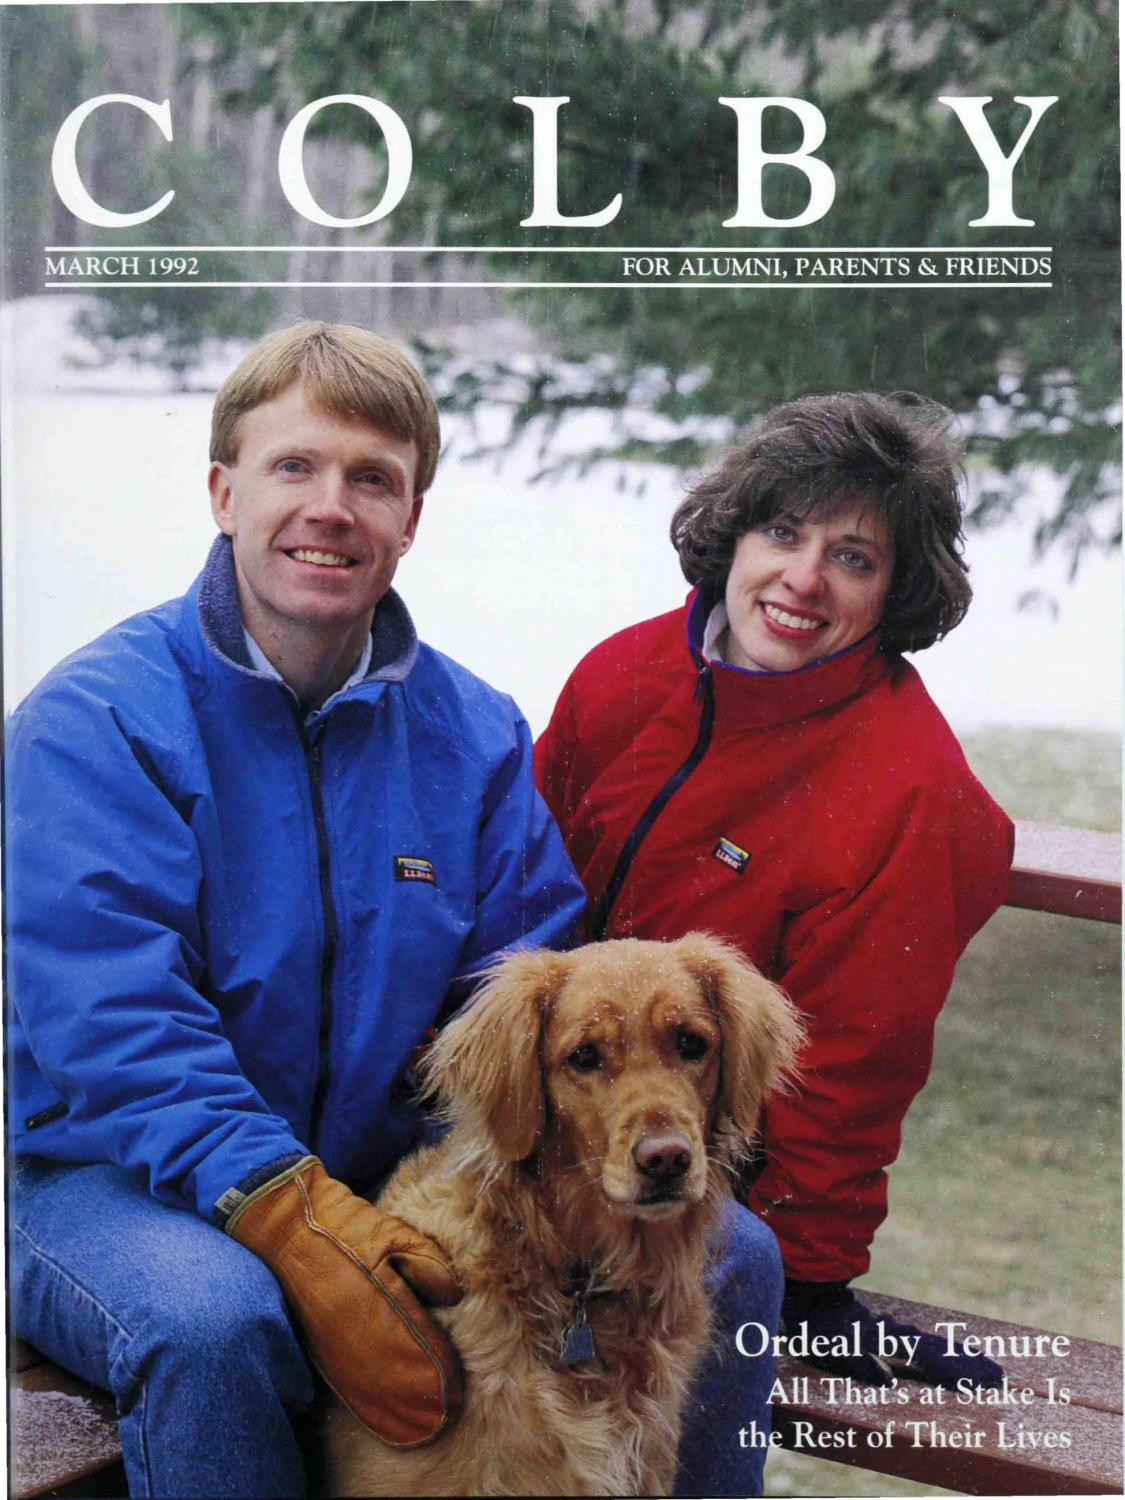 Colby Magazine vol. 83, no. 2 by Colby College Libraries - issuu